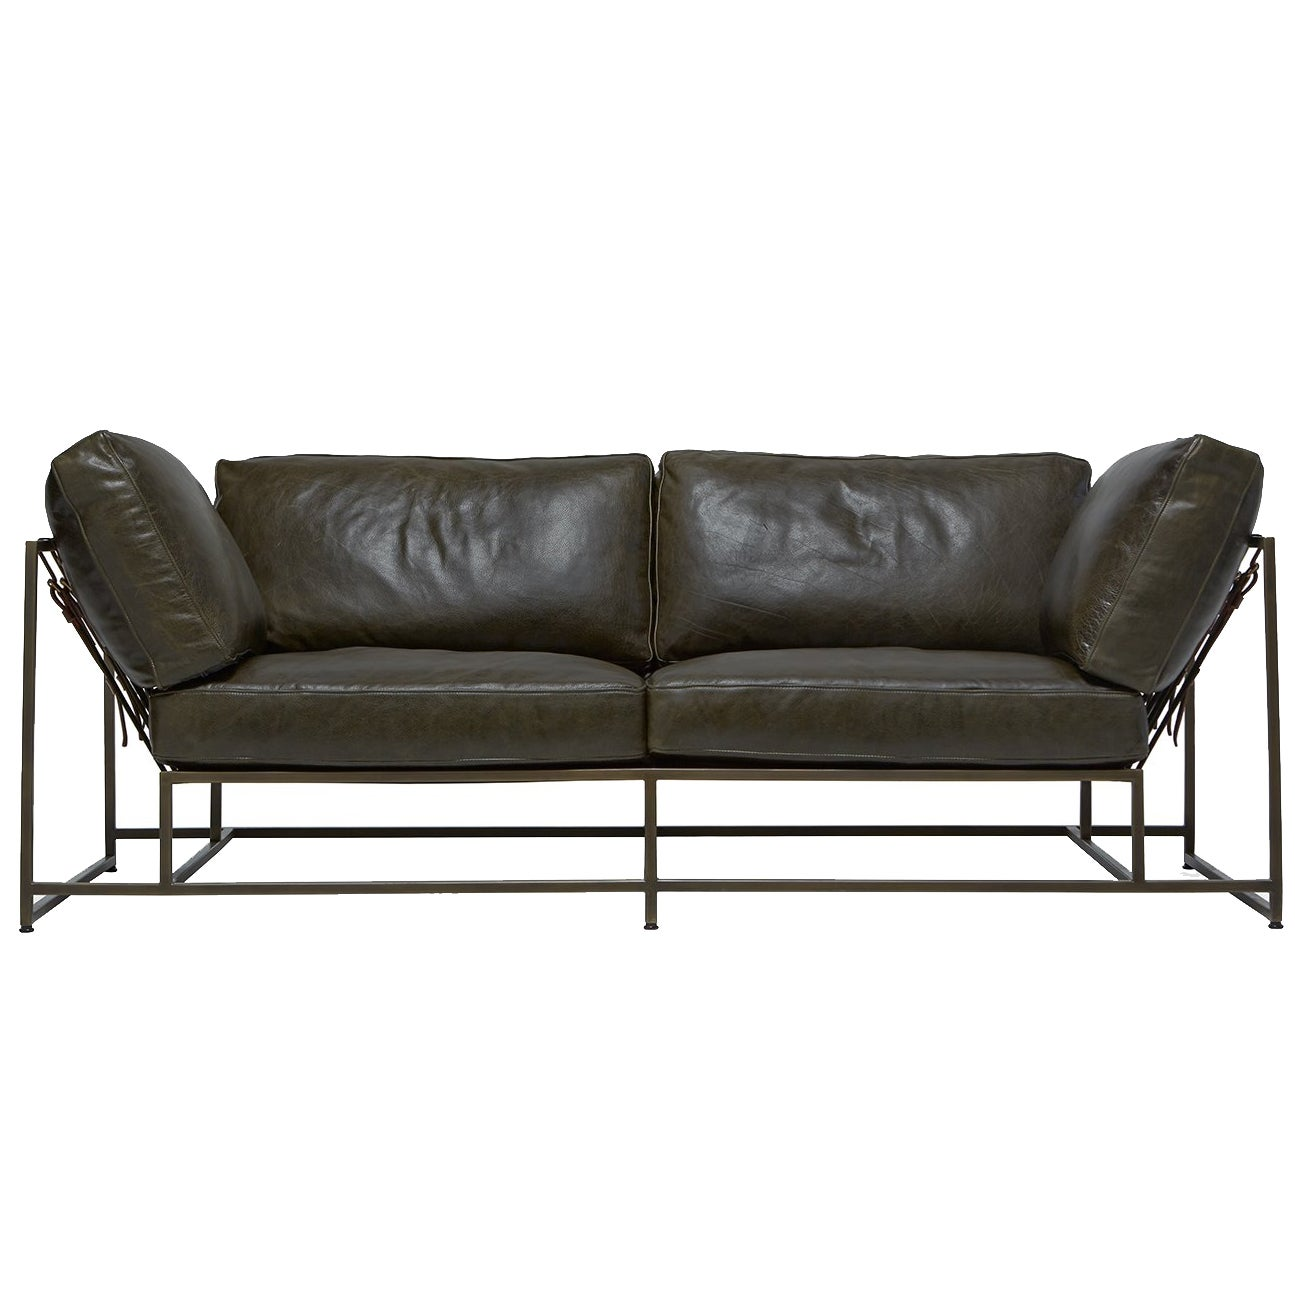 Olive Dark Green Leather And Antique Brass Two Seat Sofa For Sale At 1stdibs